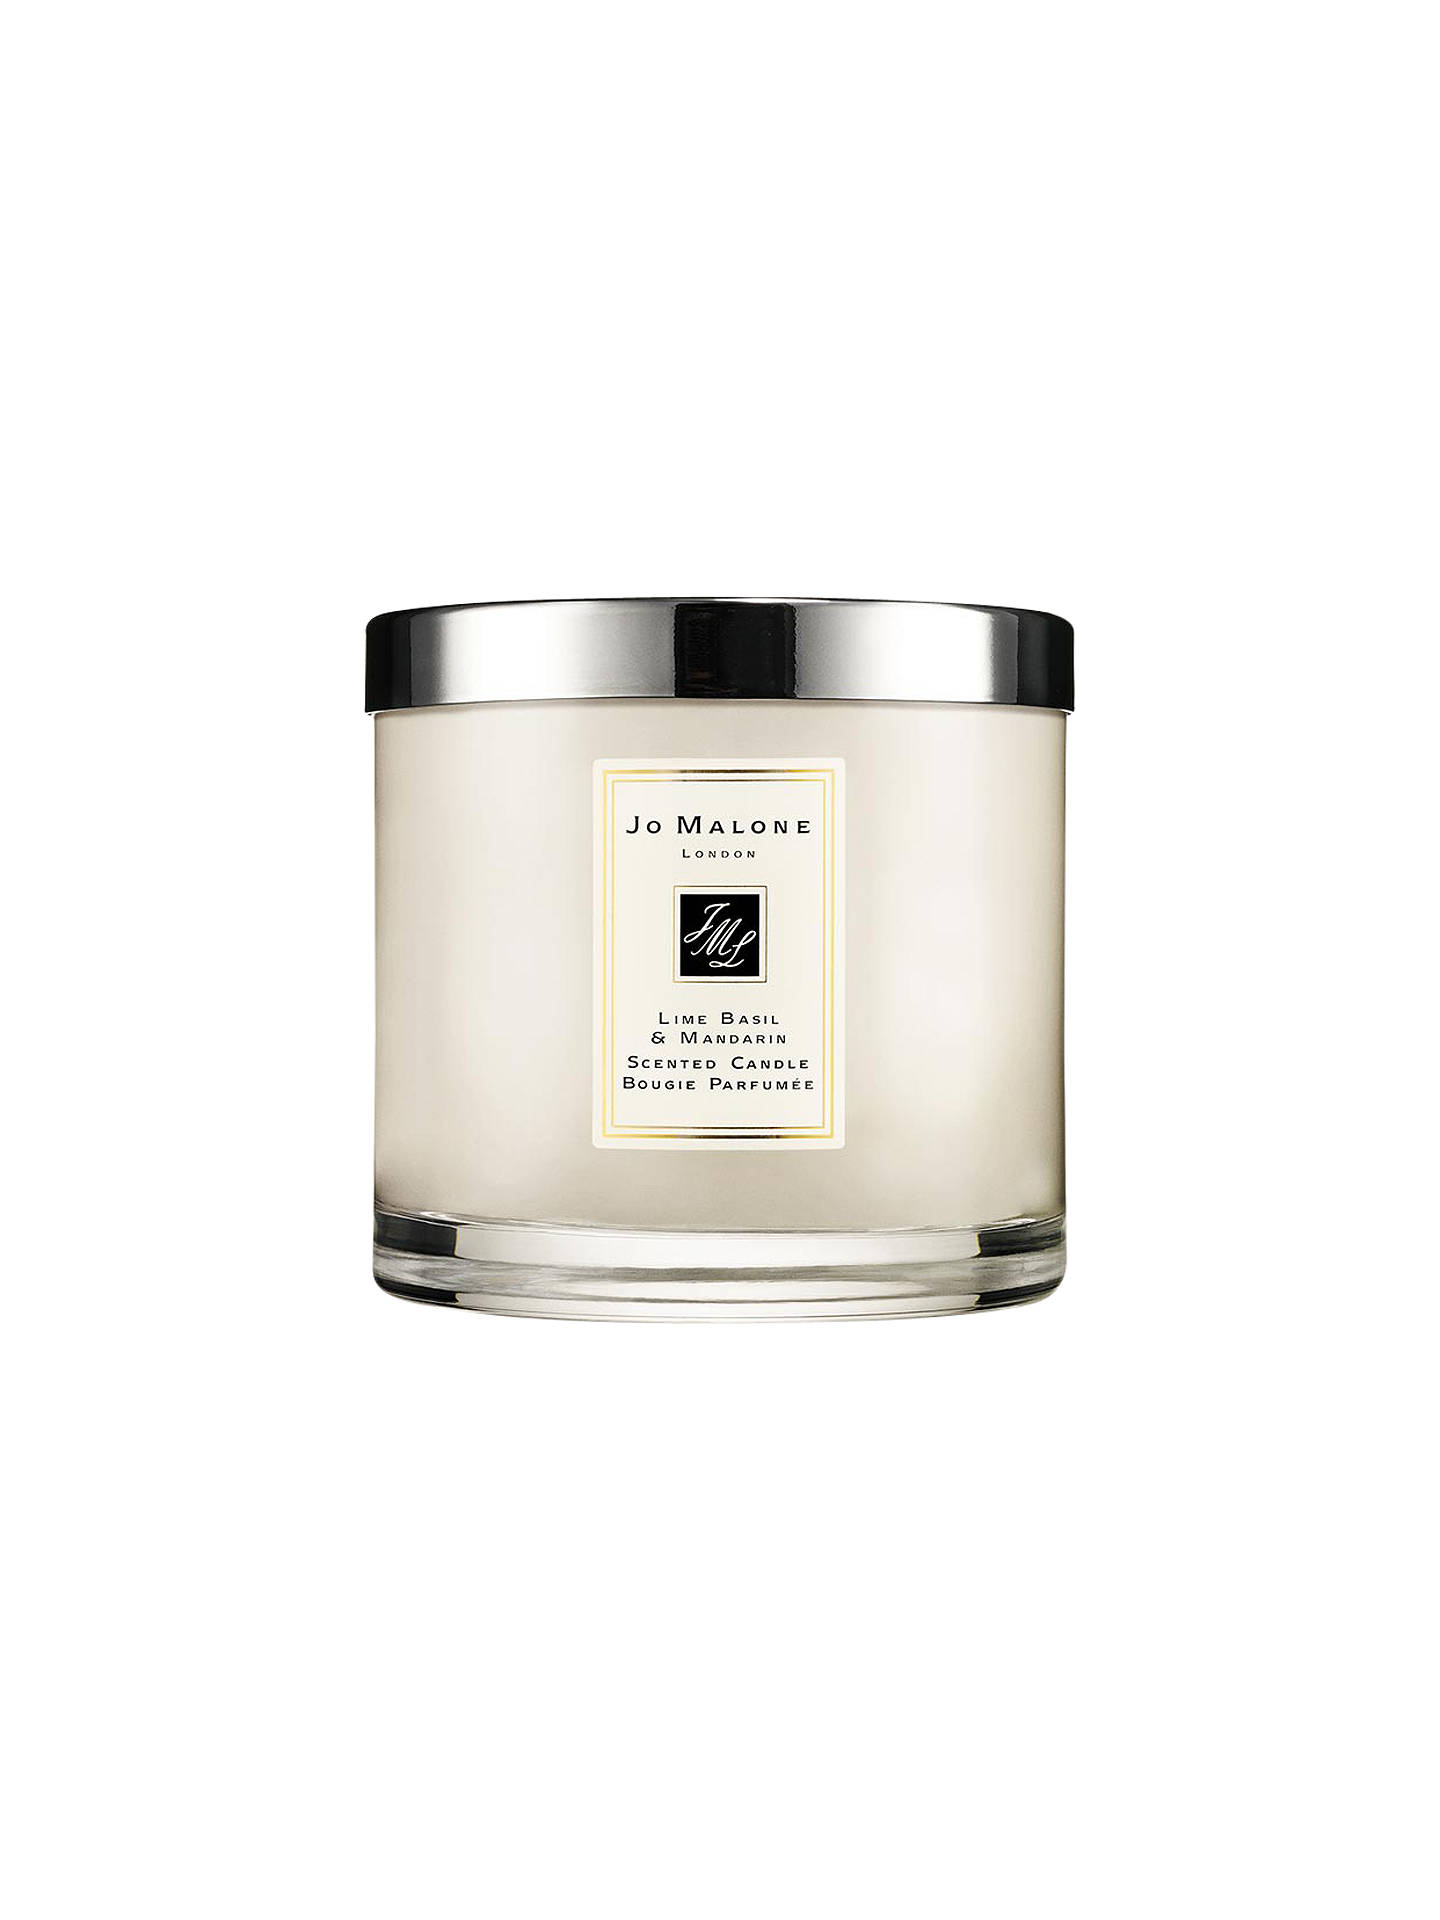 BuyJo Malone London Lime Basil & Mandarin Deluxe Candle, 600g Online at johnlewis.com